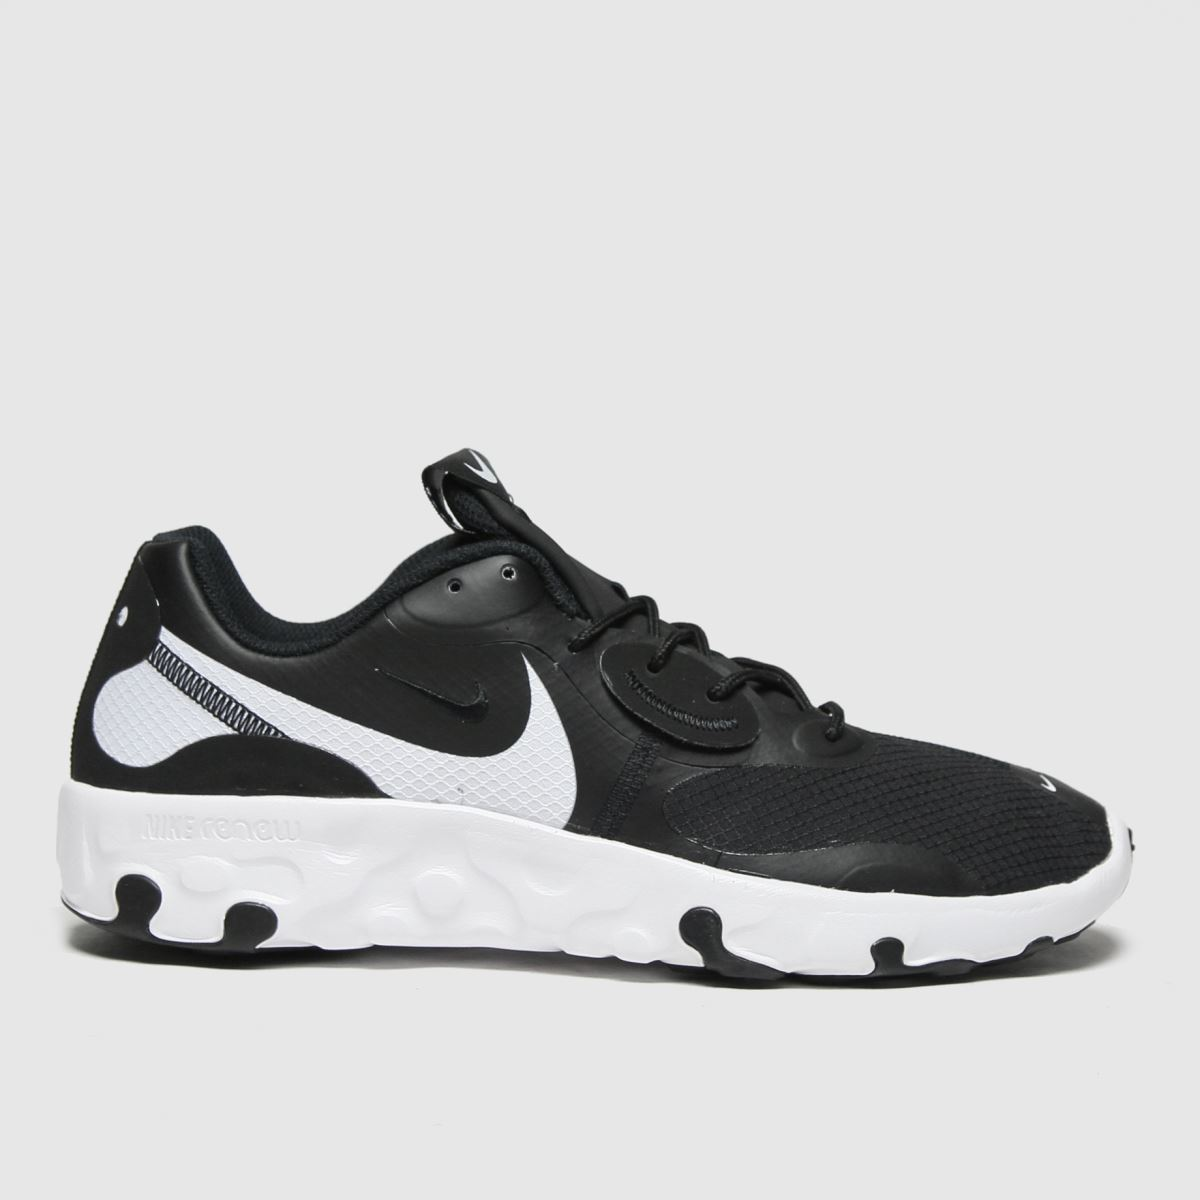 Nike Black & White Renew Lucent 2 Trainers